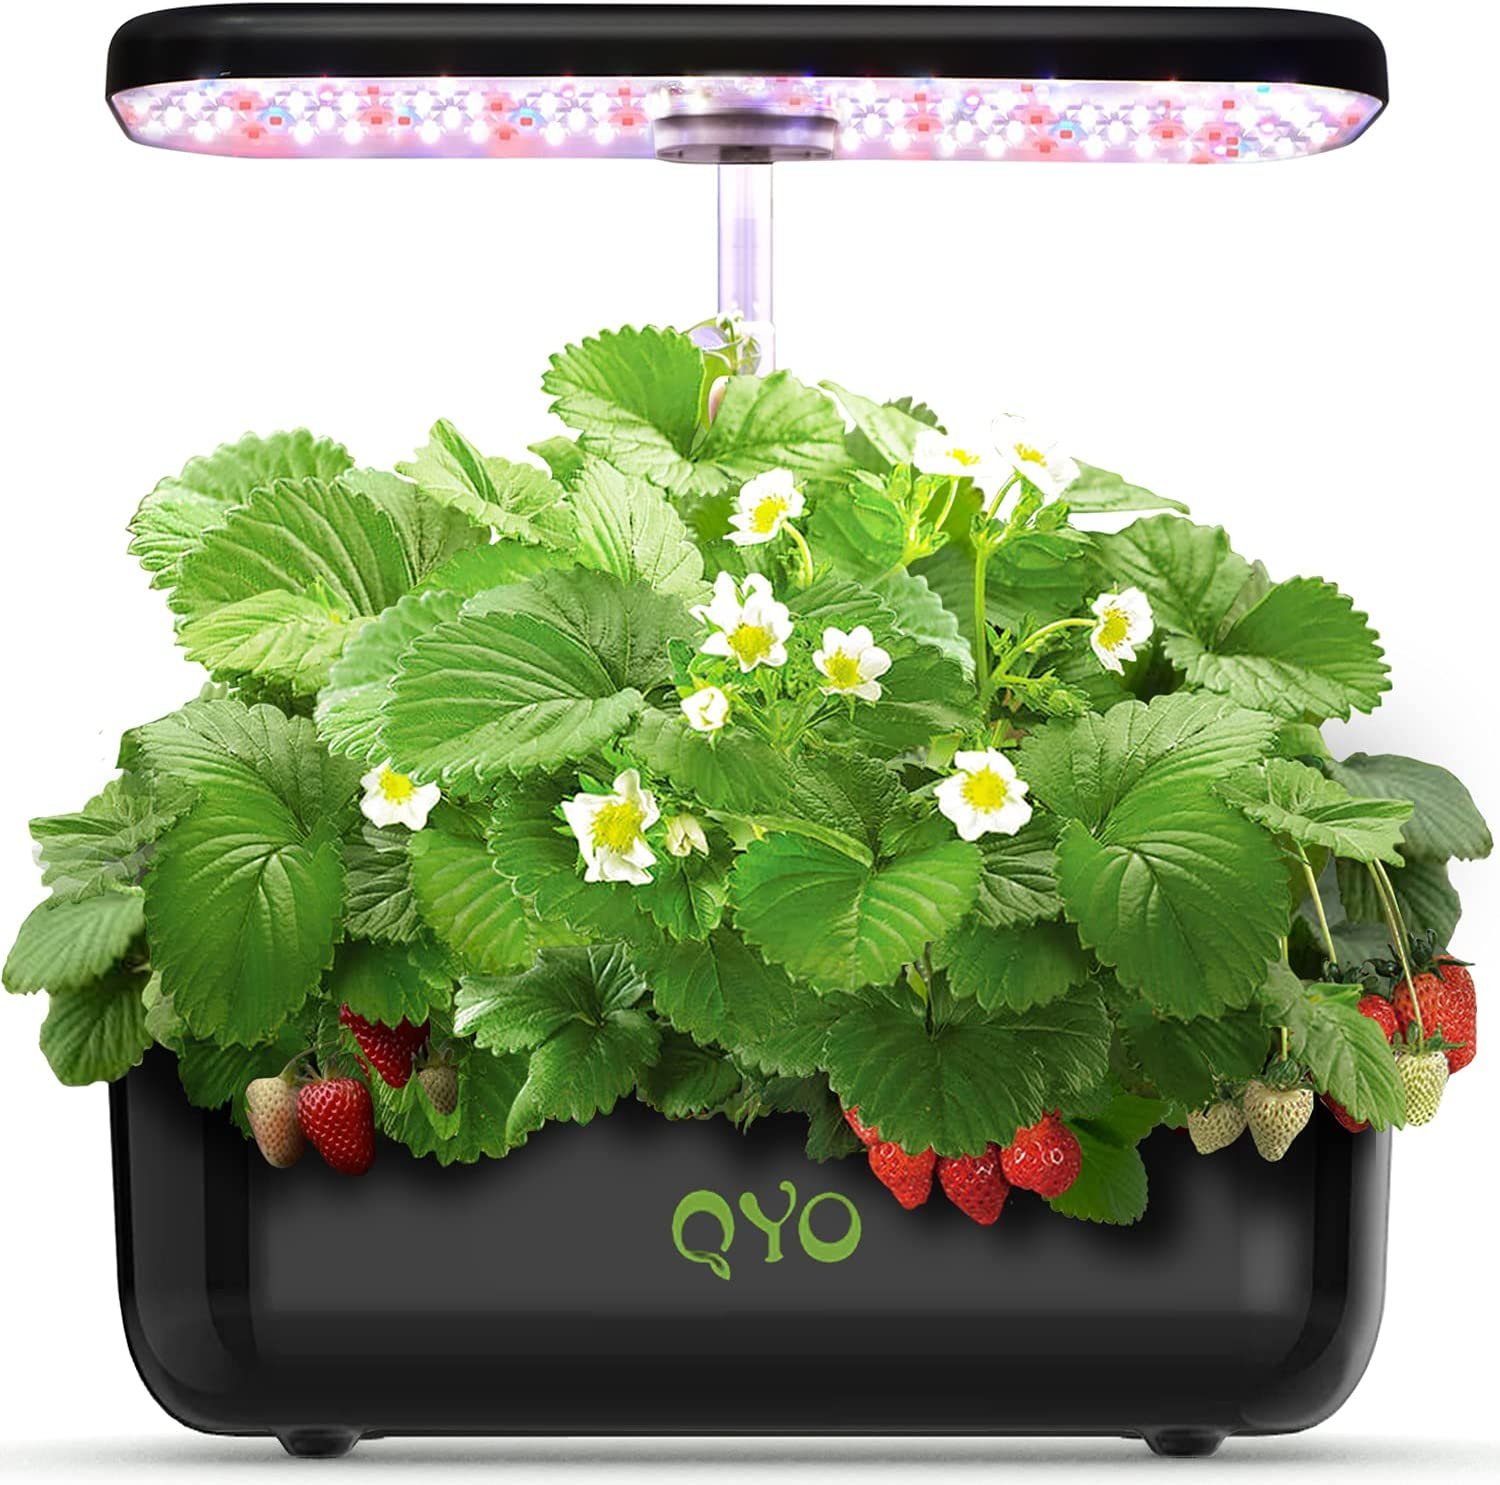 QYO 12 Pods Hydroponics Growing System, Indoor Herb Garden Kit with LED Grow Light, Automatic Timer Germination Kit with Height Adjustable, Smart Garden Planter for Kitchen Home(Seeds Not Include )